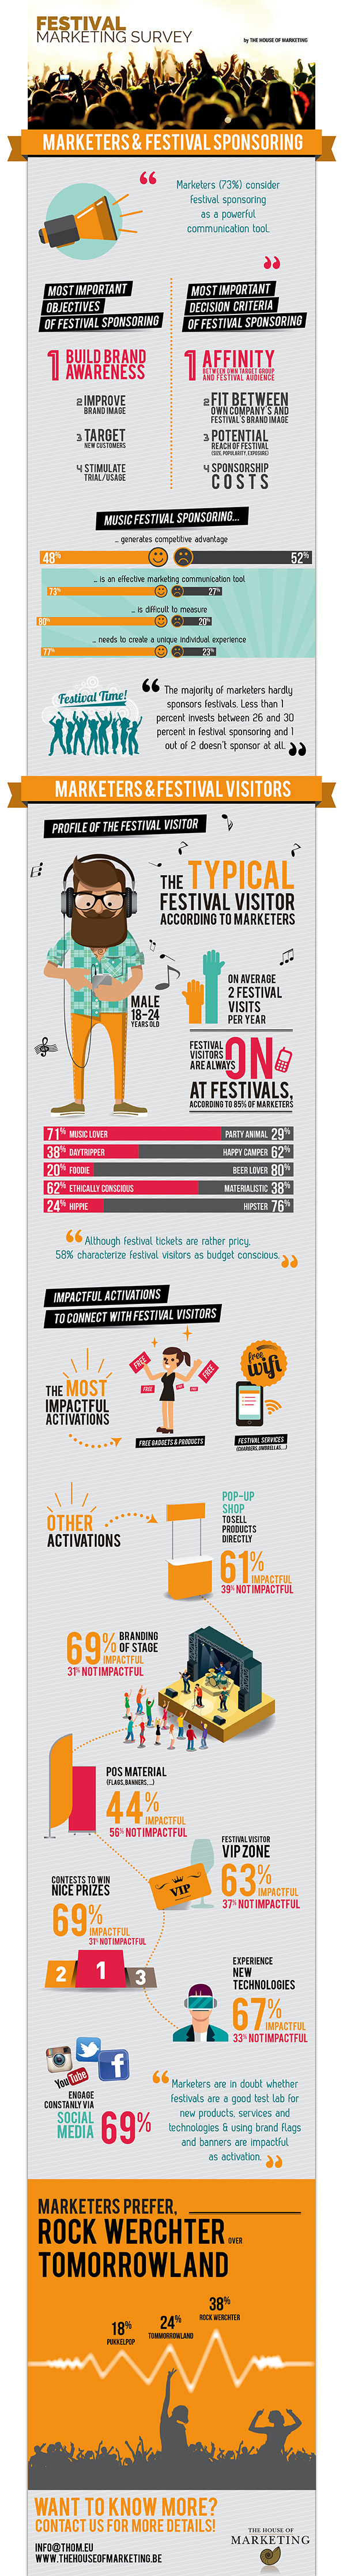 Infographic-Festival-Marketing-Survey-The-House-of-Marketing-JPEG